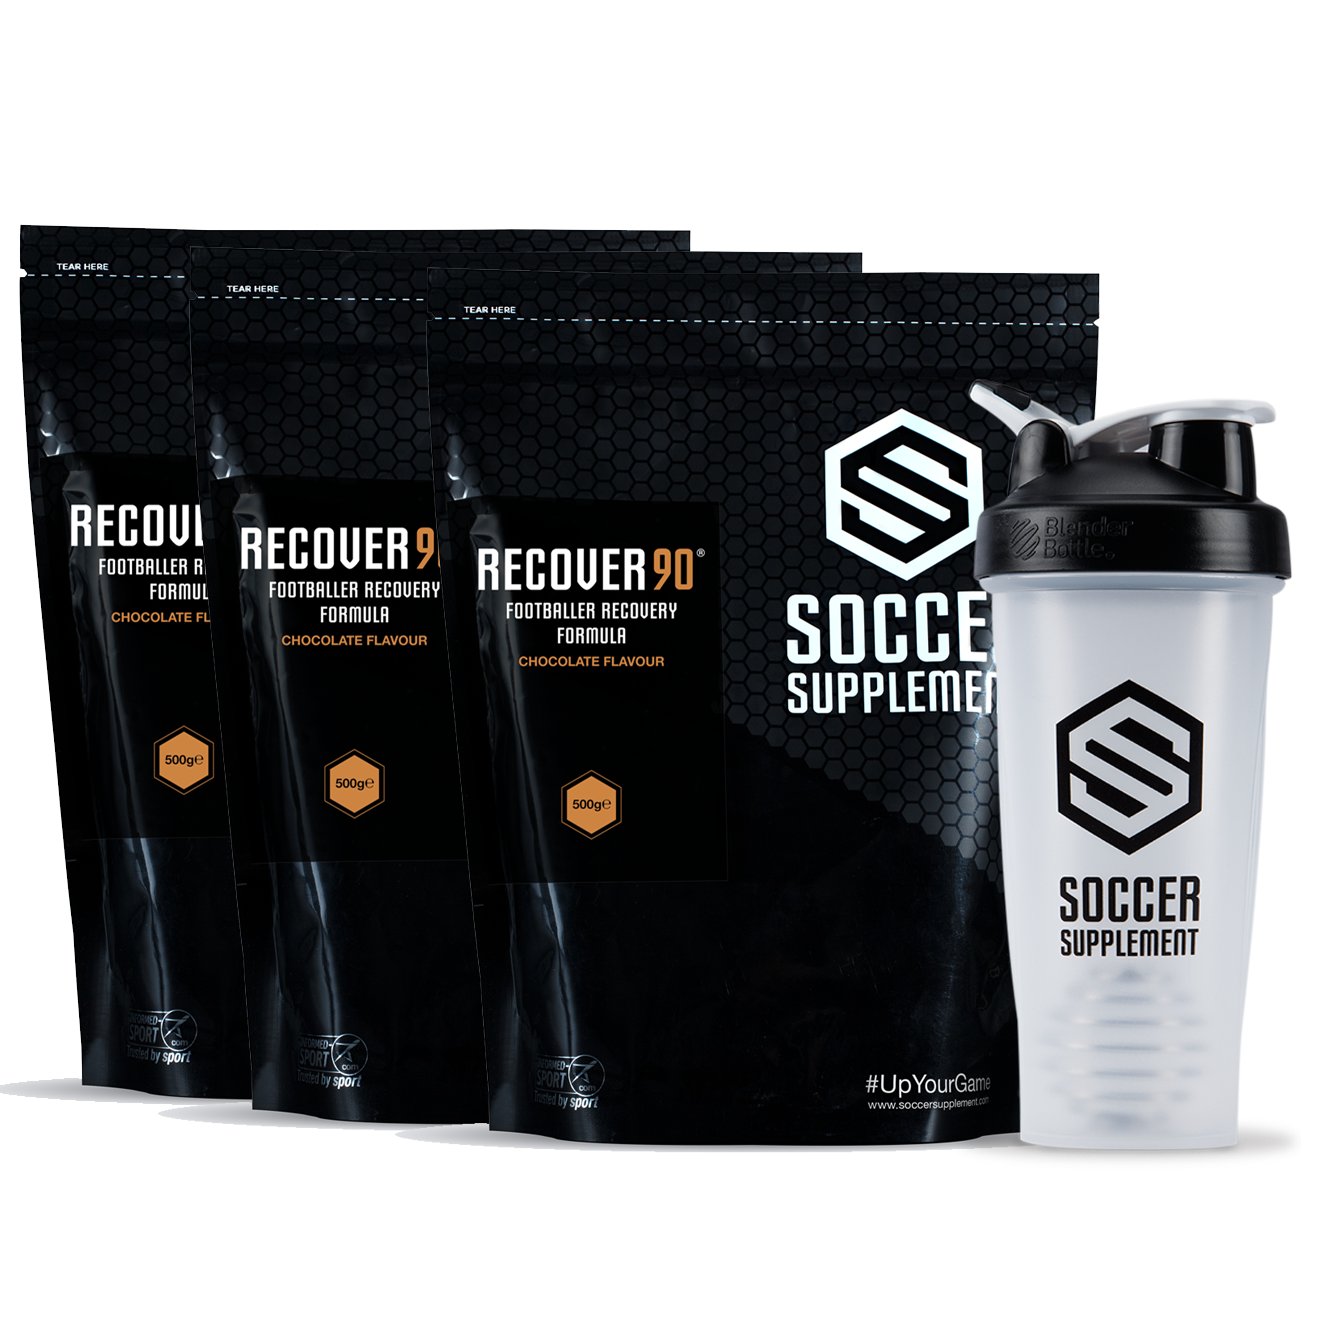 RECOVER90 PACKAGE